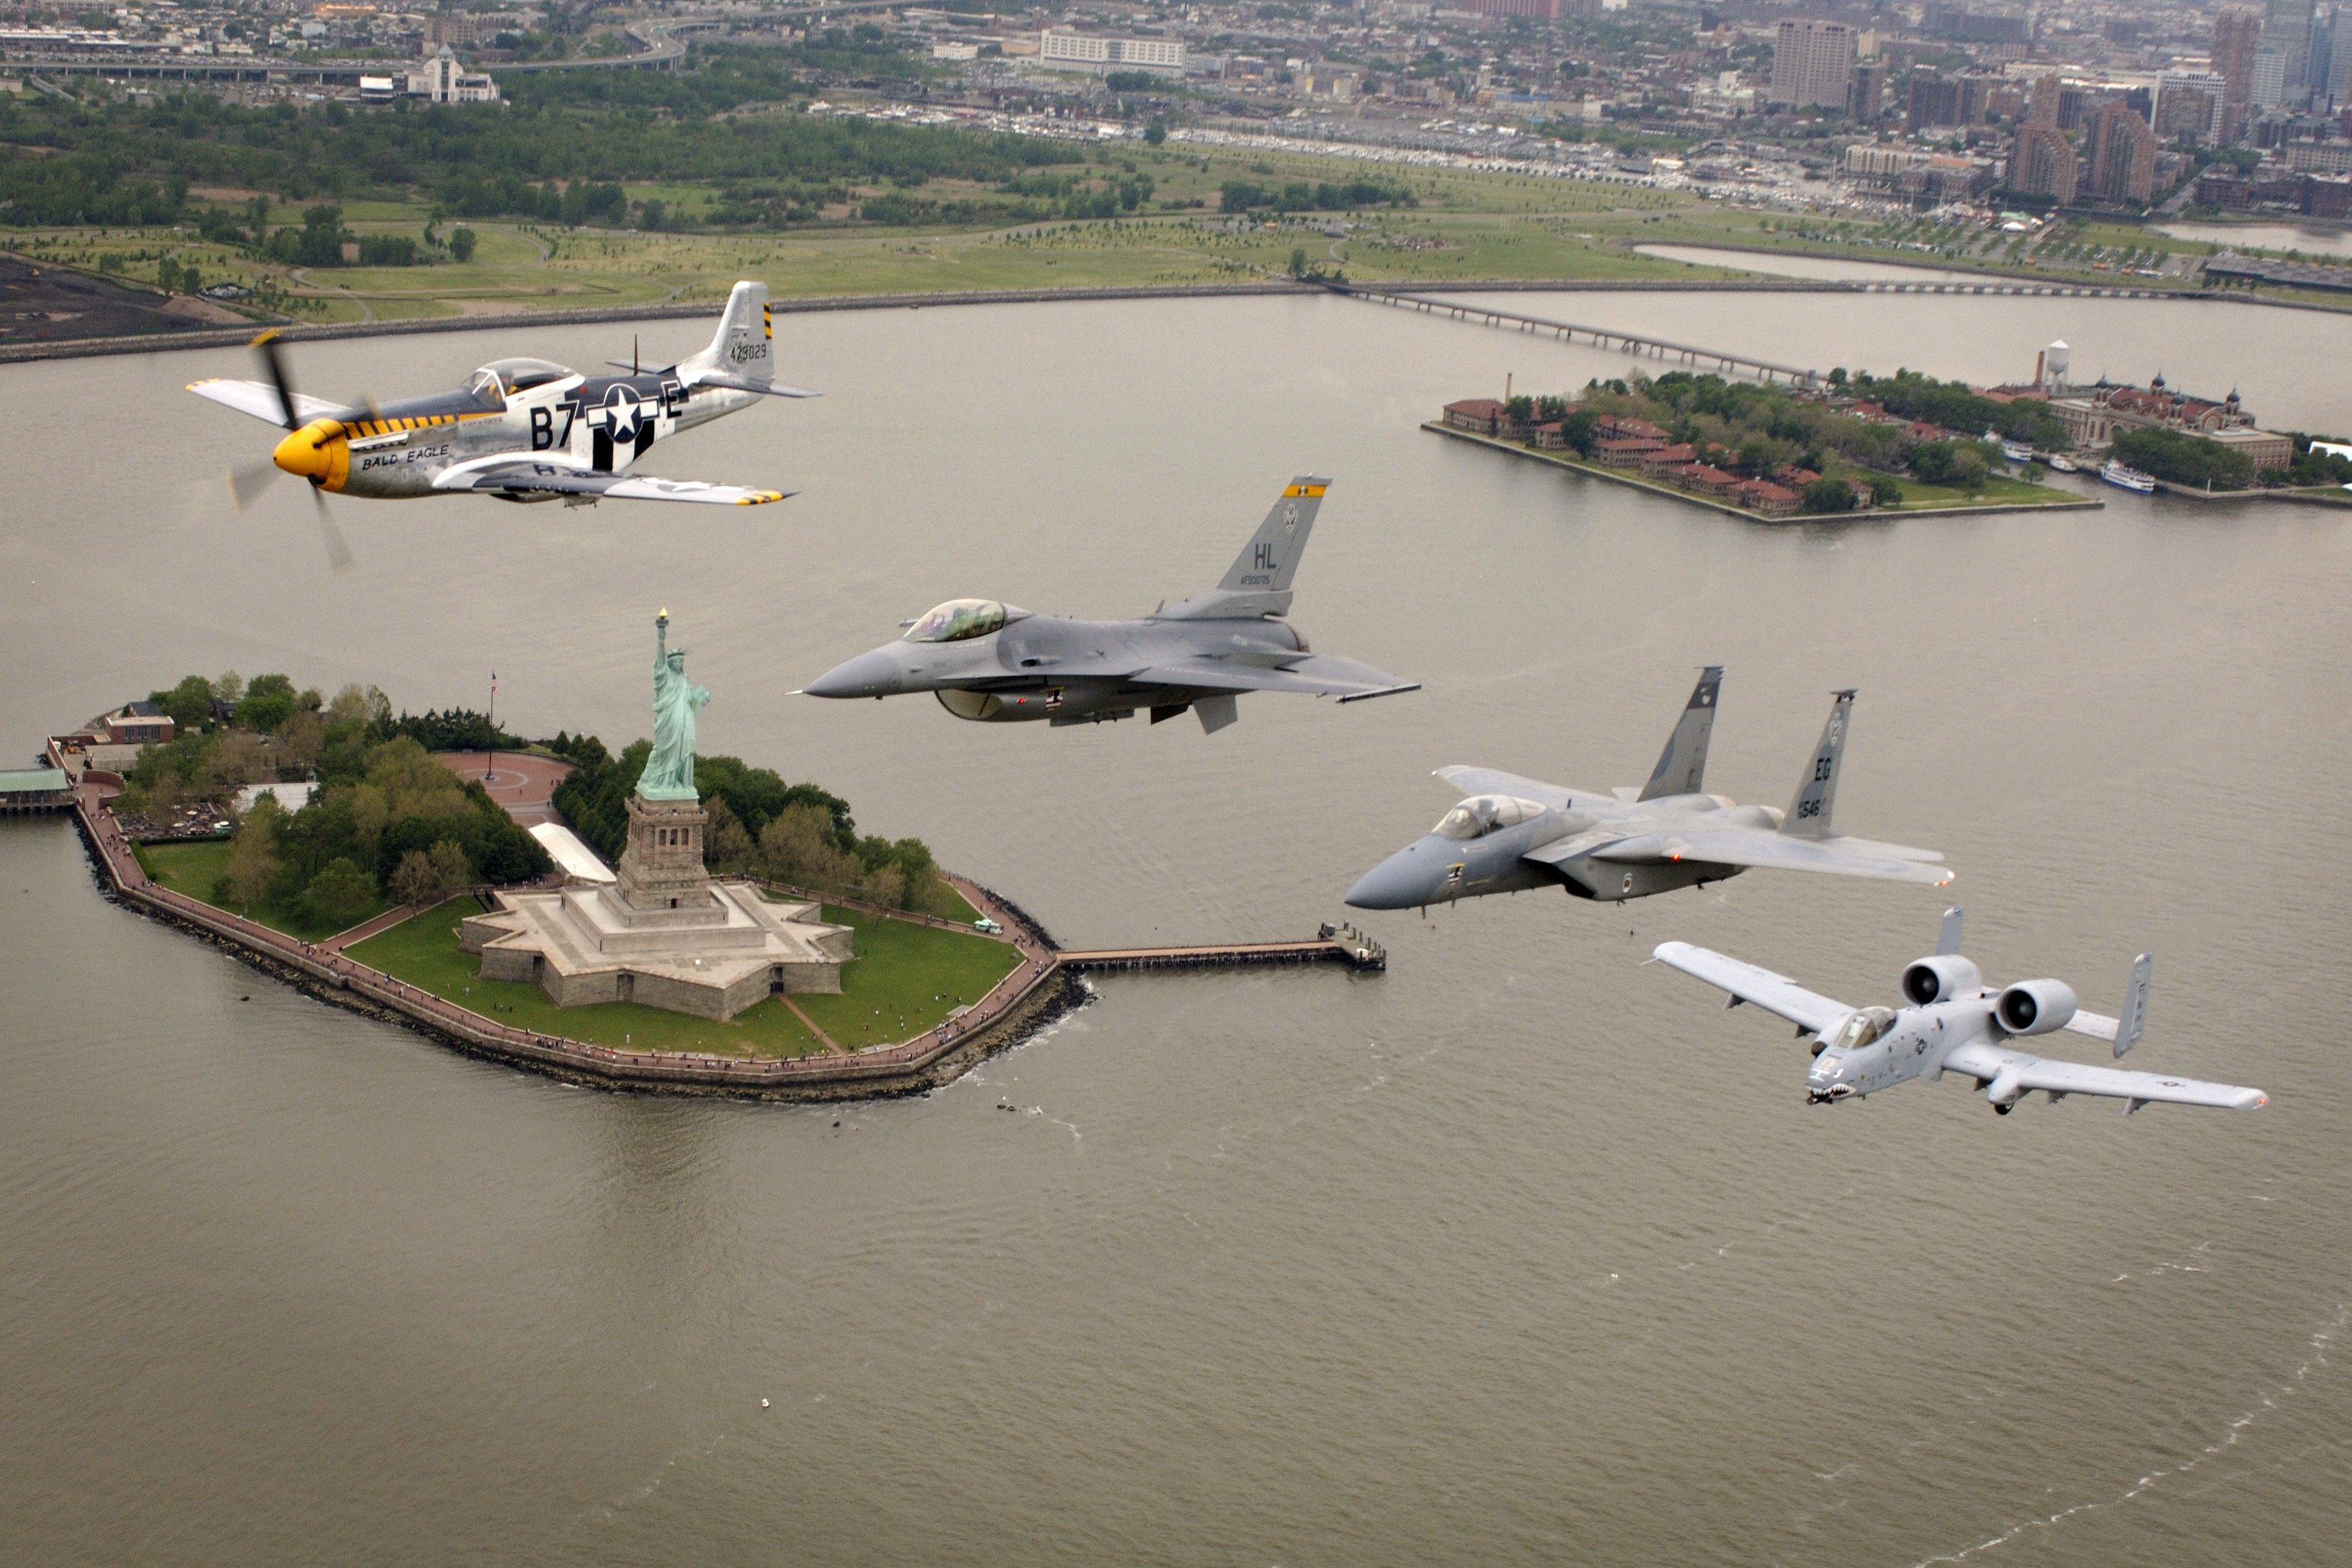 Aircraft military new york